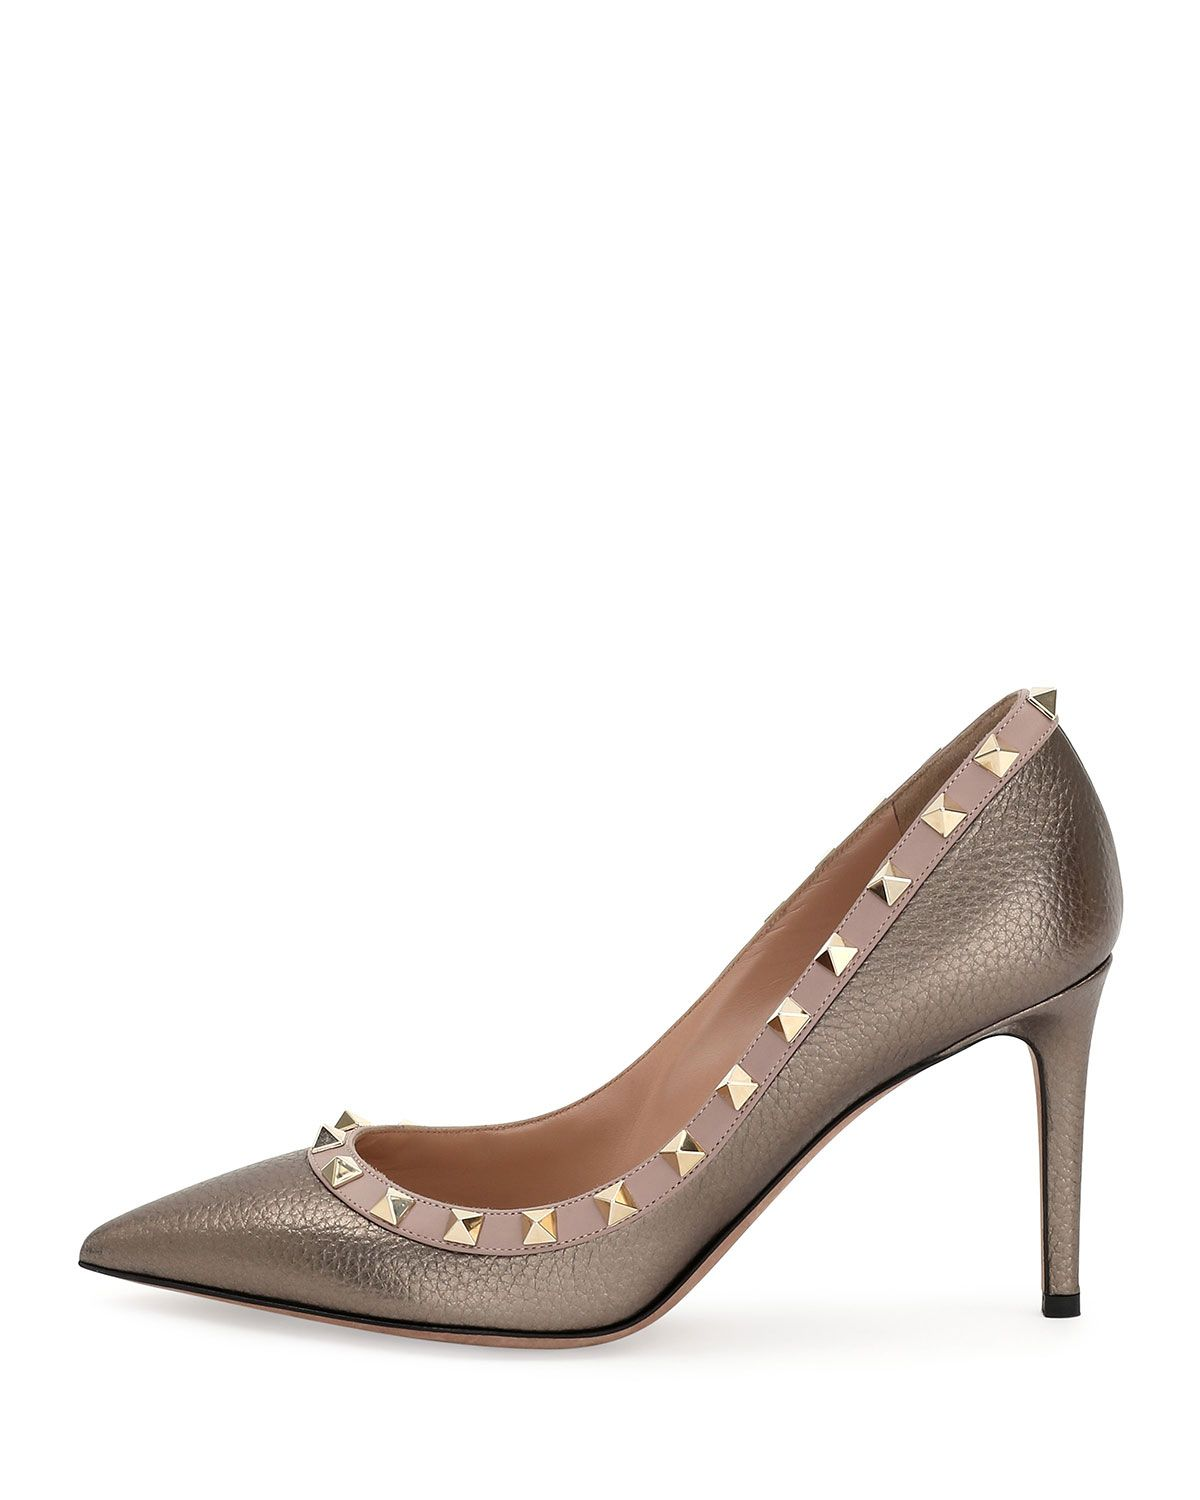 a662a48f7a Rockstud Leather 85mm Pumps Sasso/Poudre | Products | Valentino ...